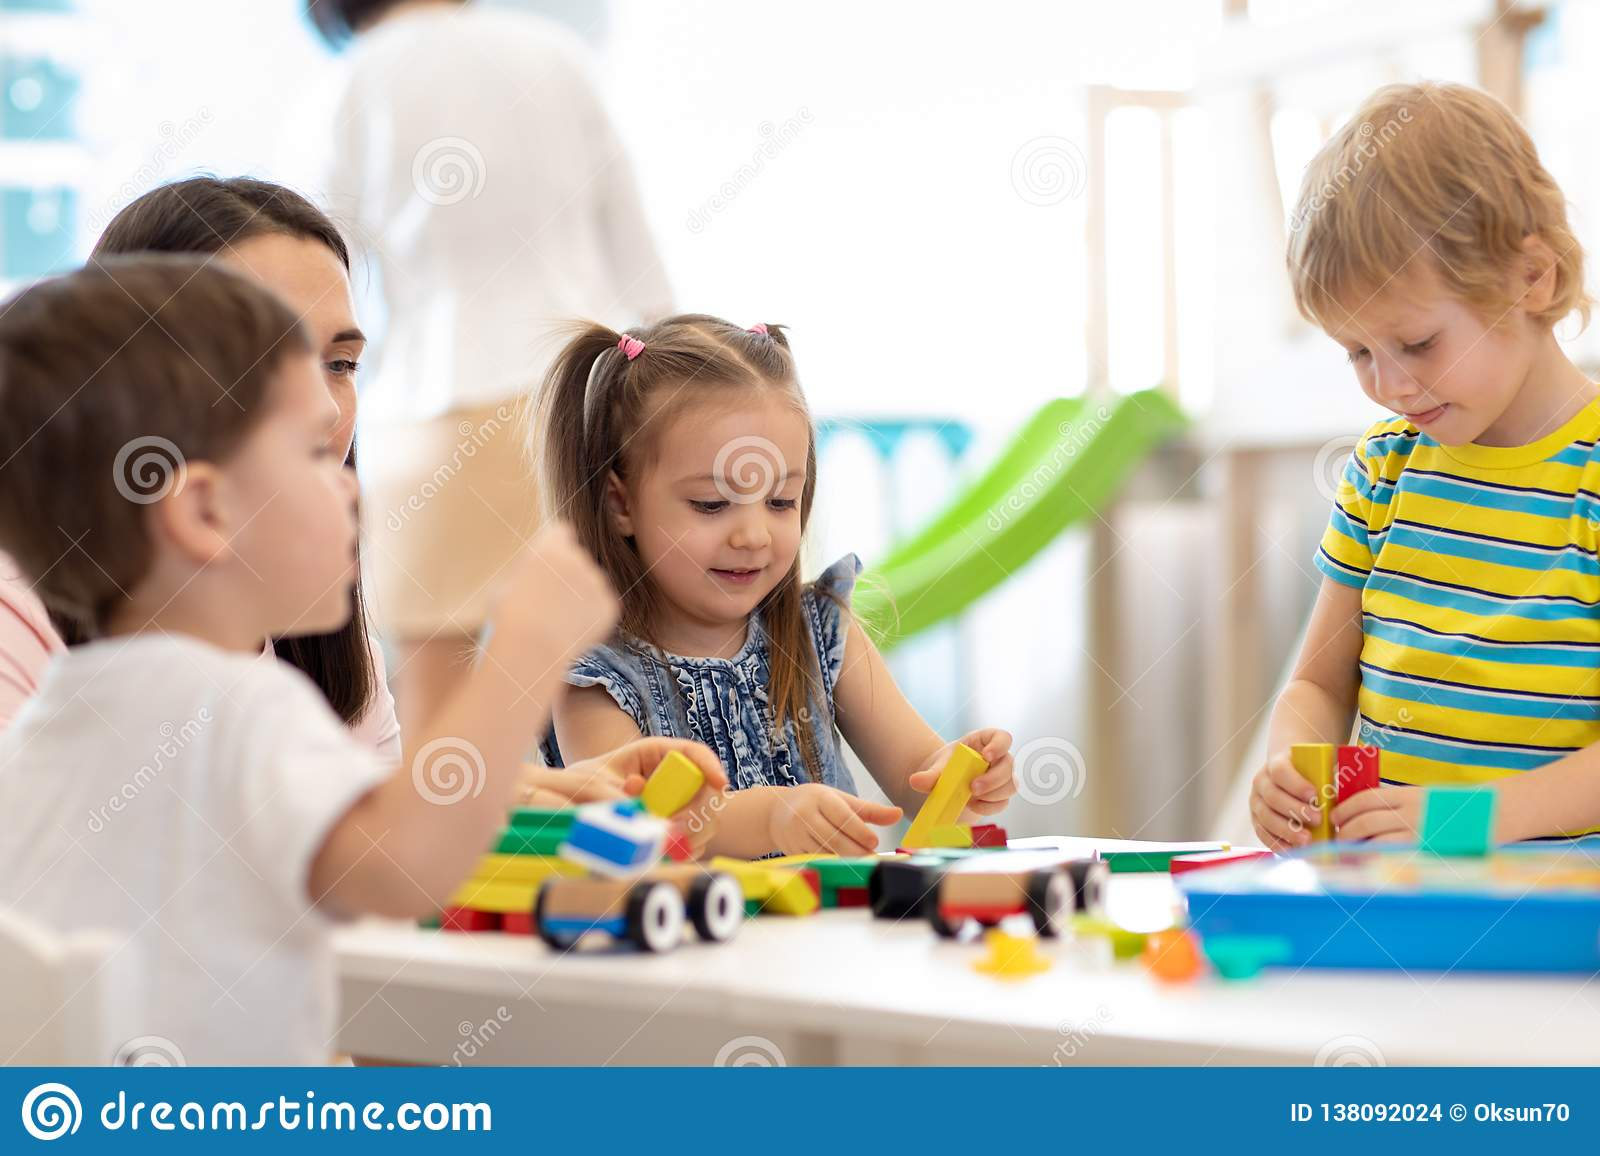 Kids playing with educational toys in kindergarten. Nursery teacher looking after children